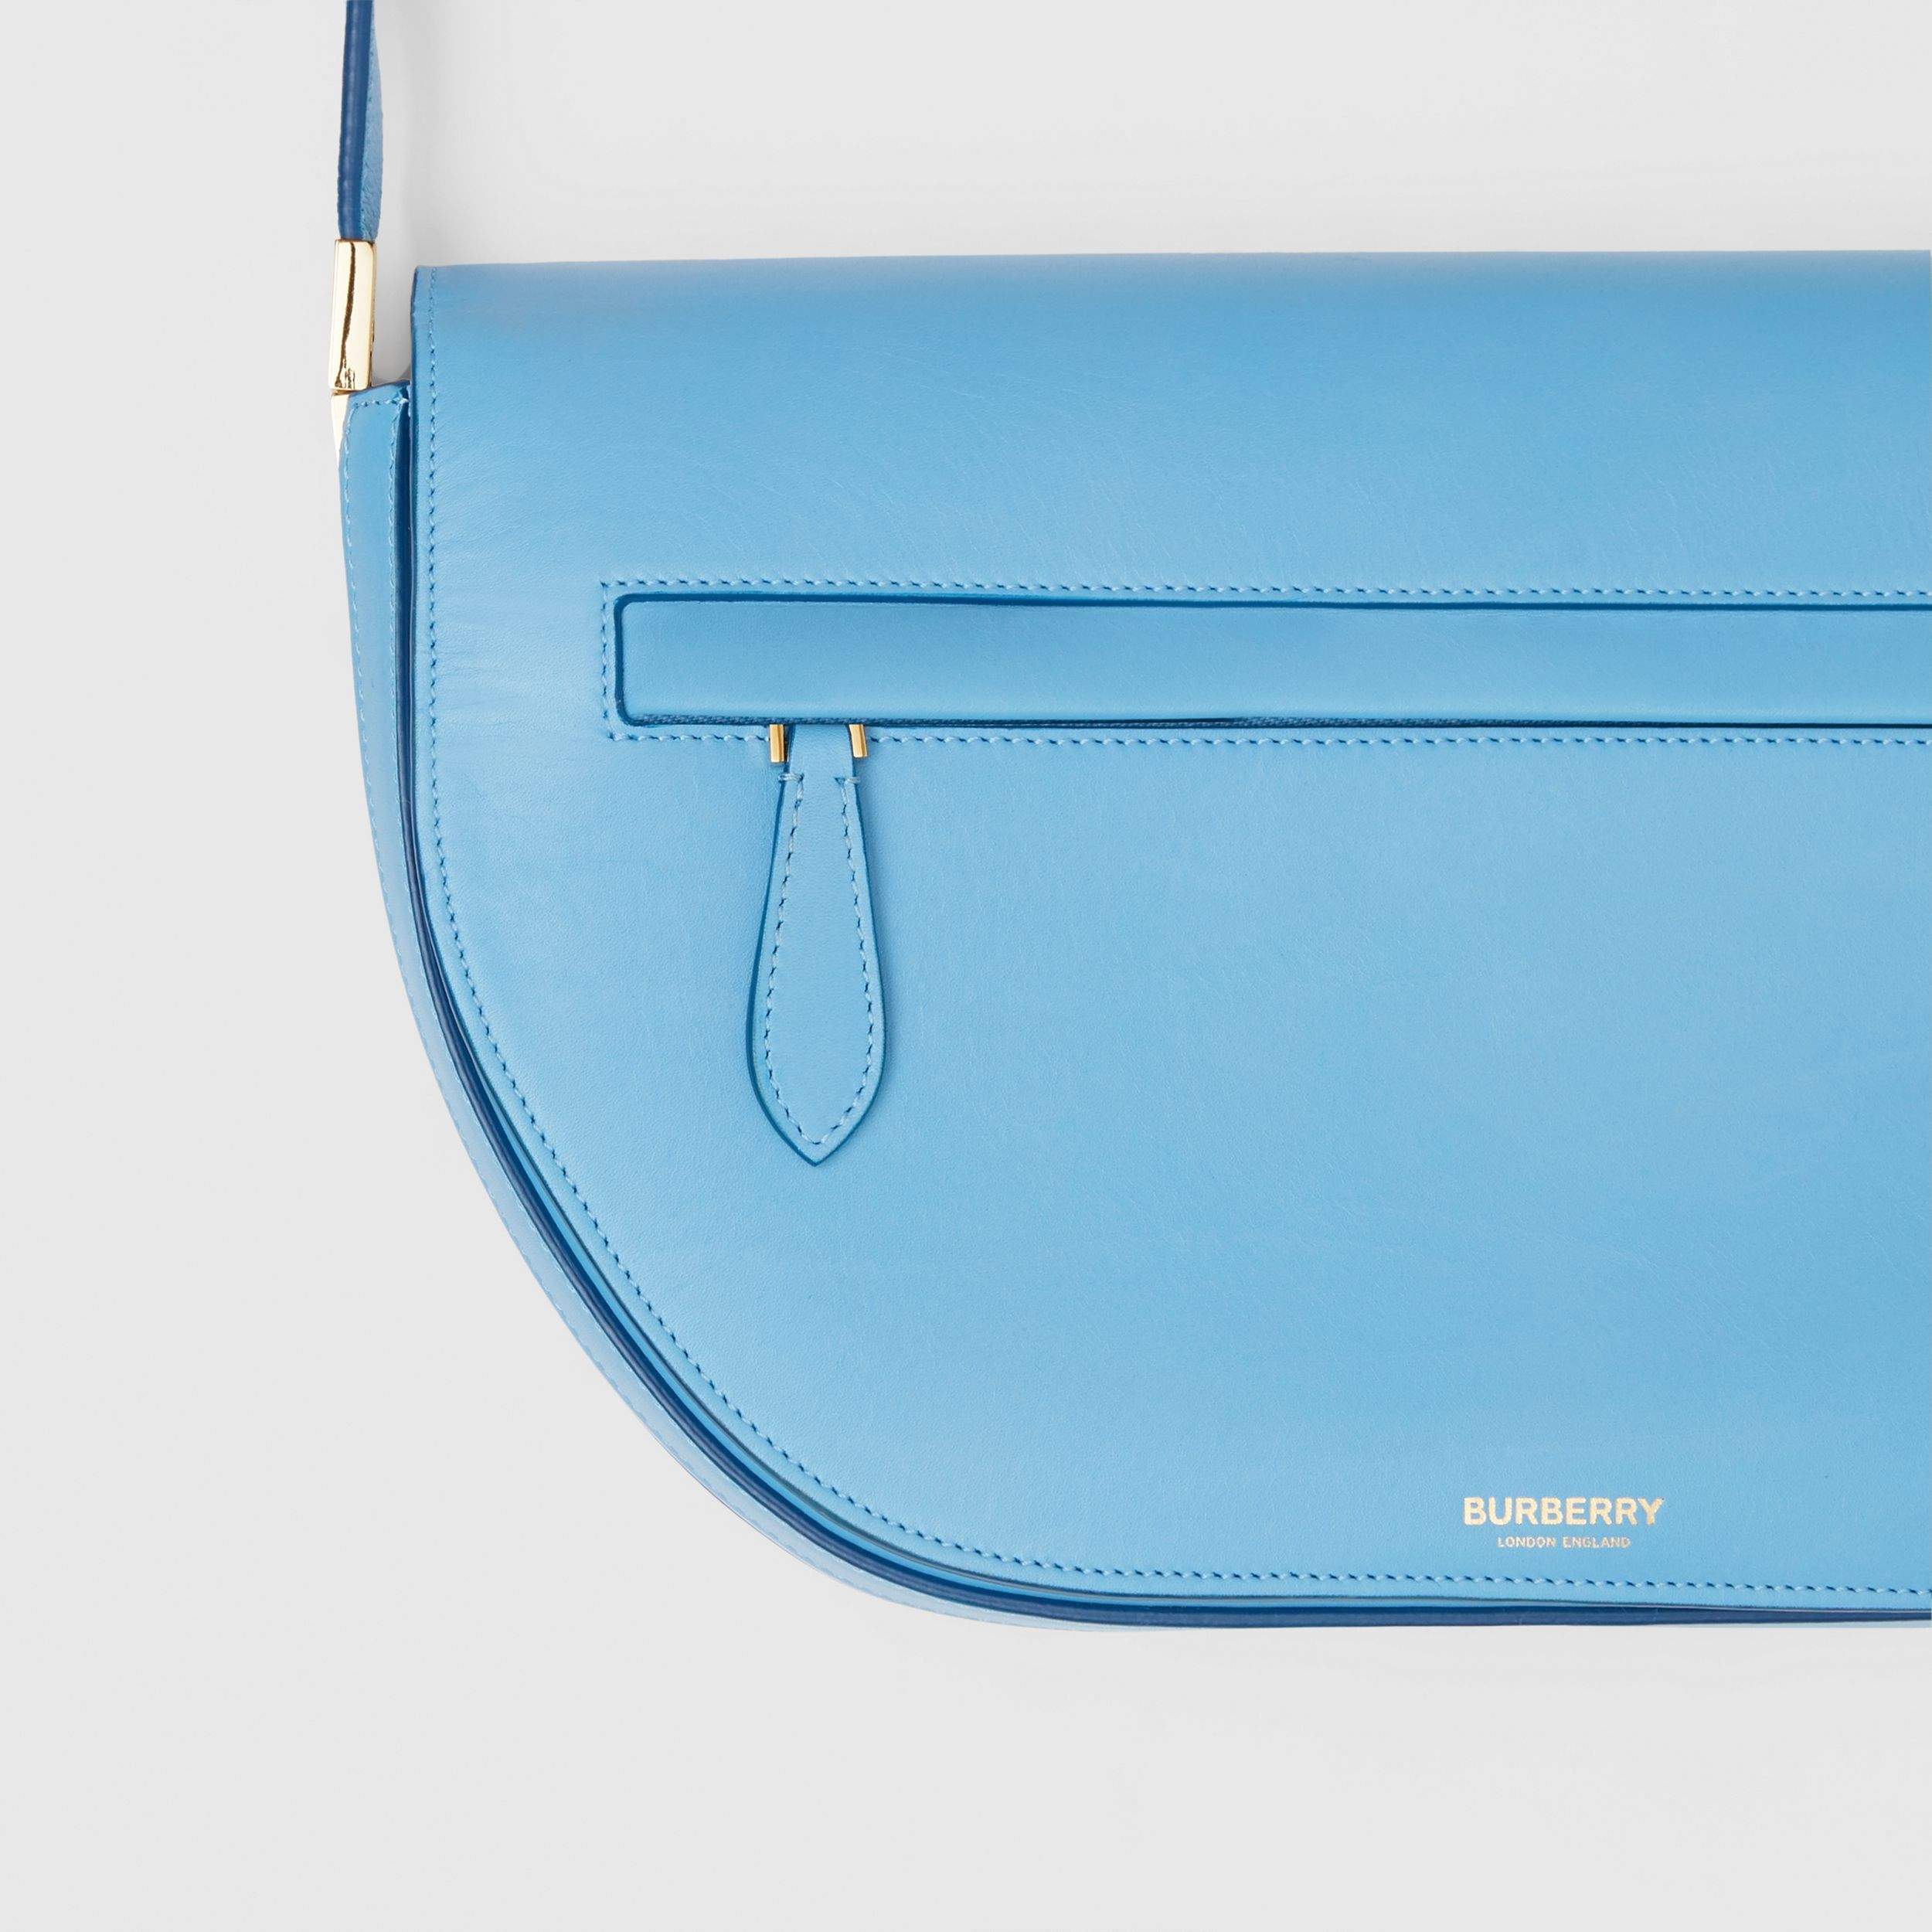 Medium Leather Olympia Bag in Blue Topaz | Burberry - 2